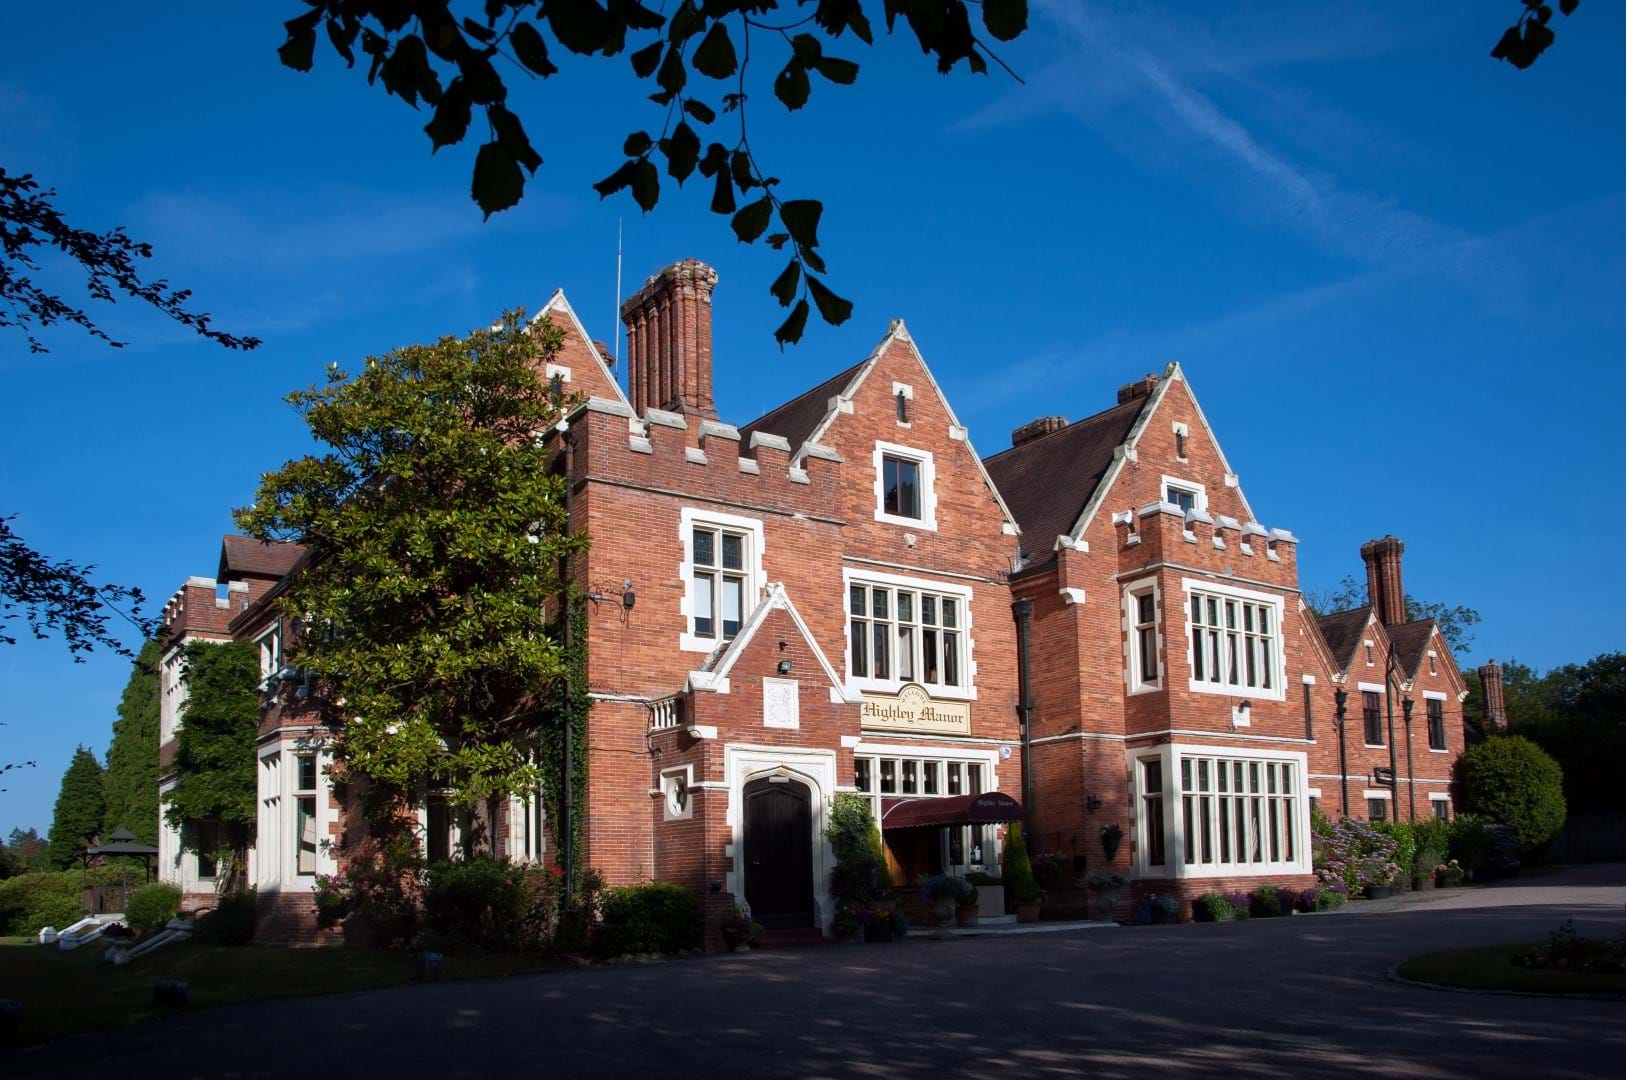 highley-manor-building-13-large-jpg